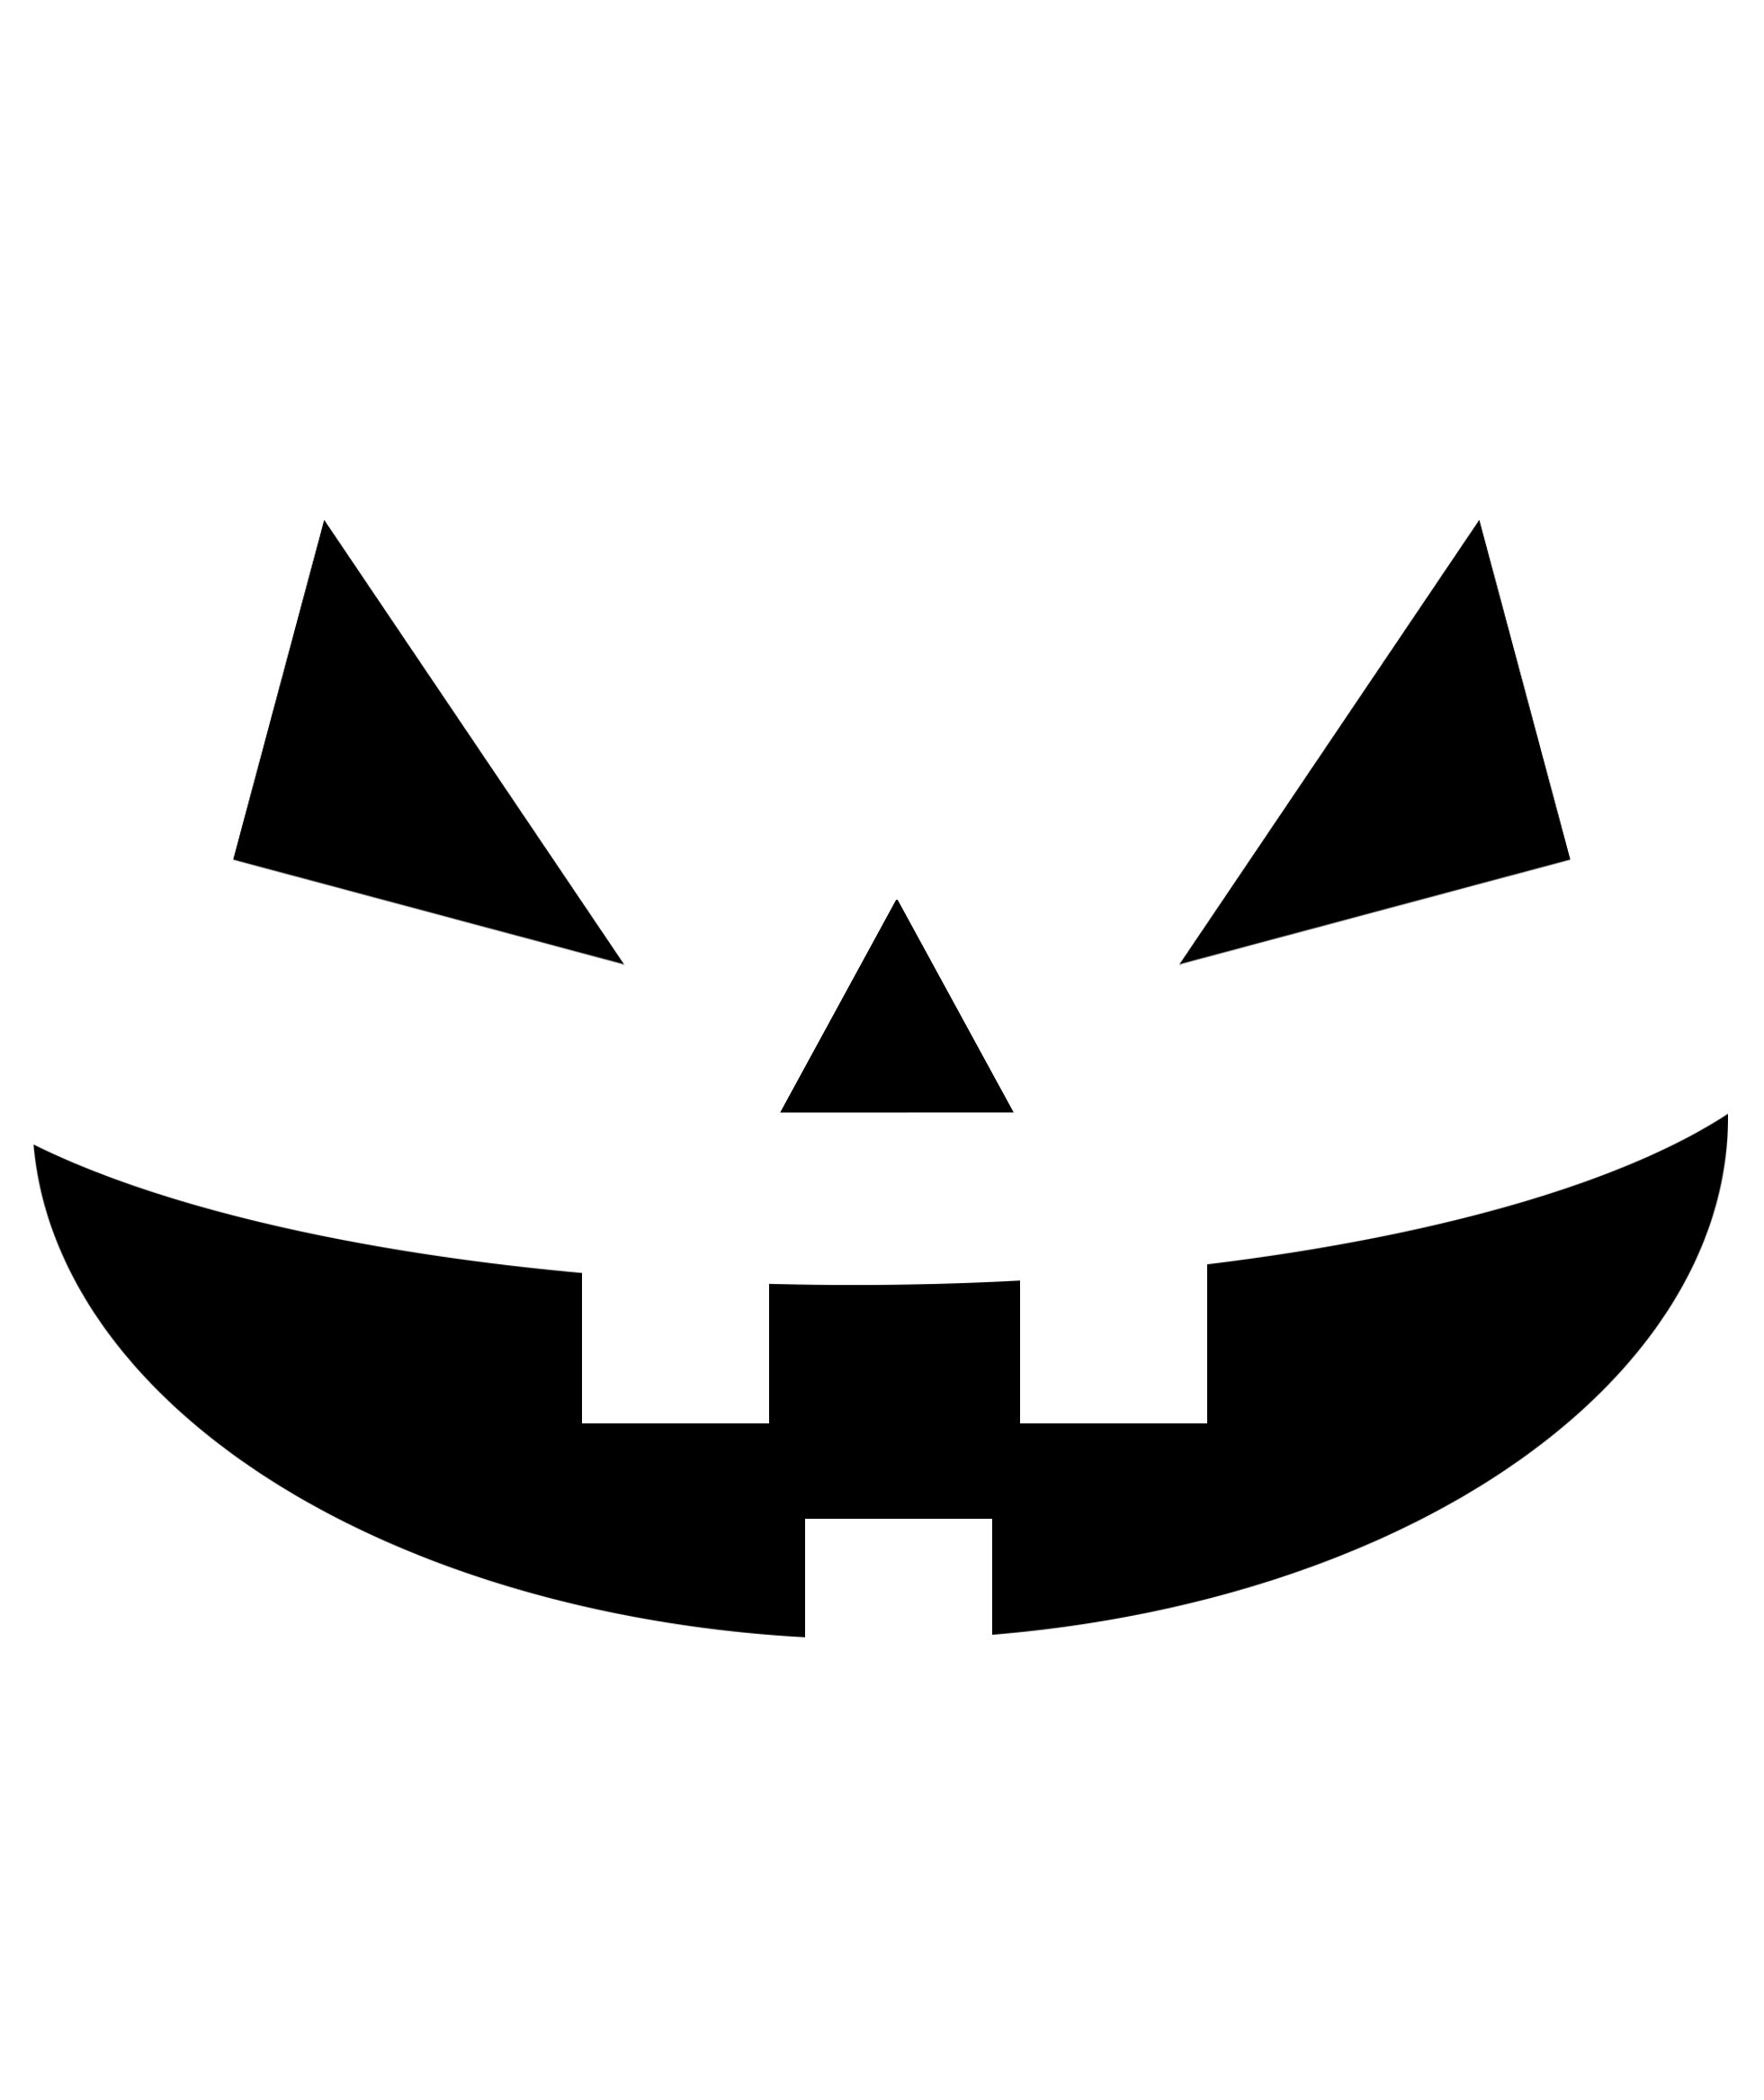 Create creepy halloween carvings with these pumpkin